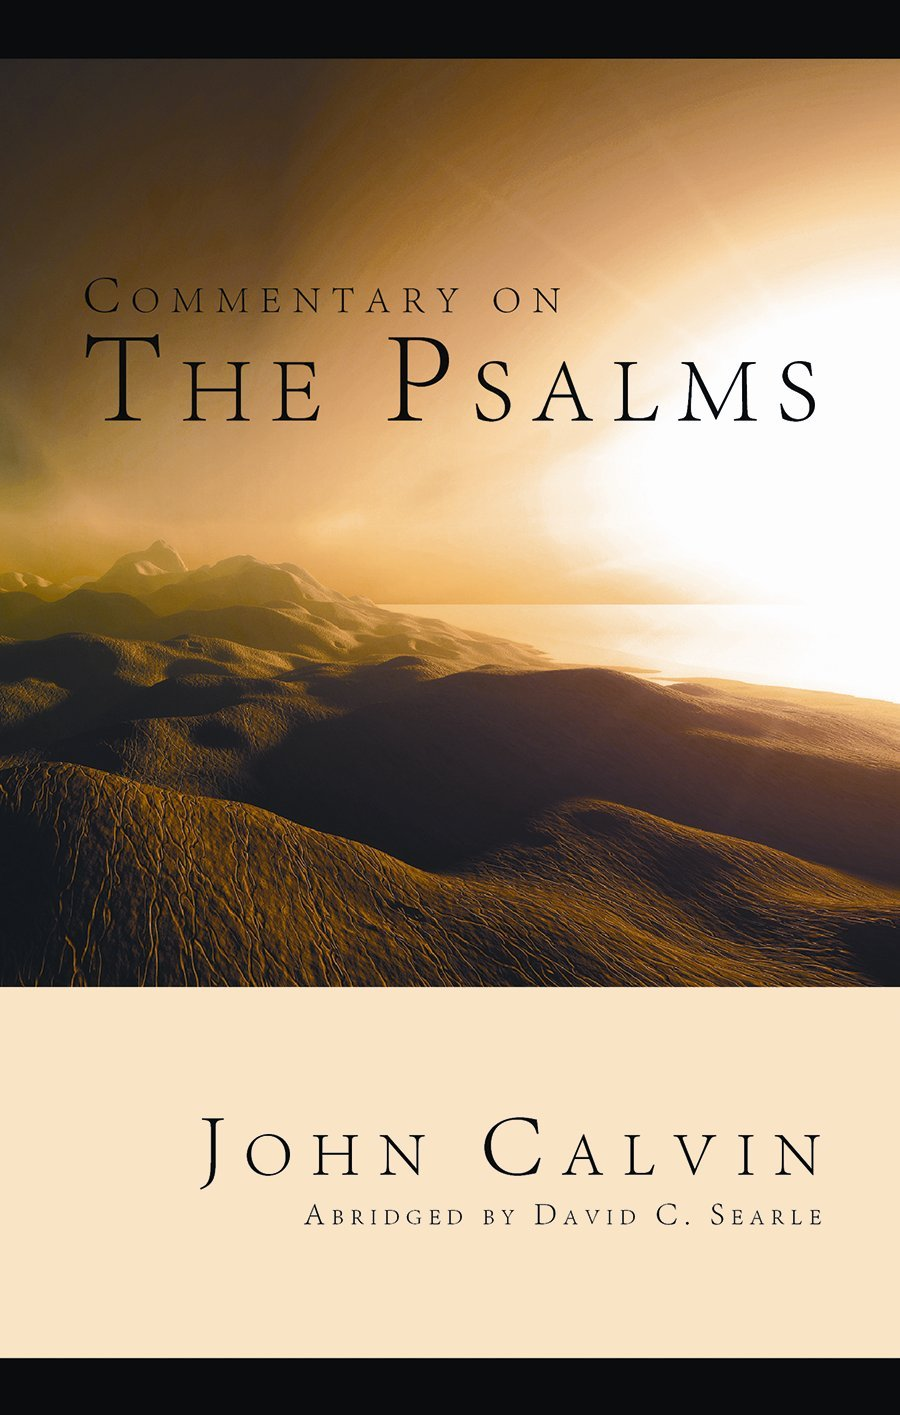 Commentary on The Psalms: John Calvin, David C  Searle